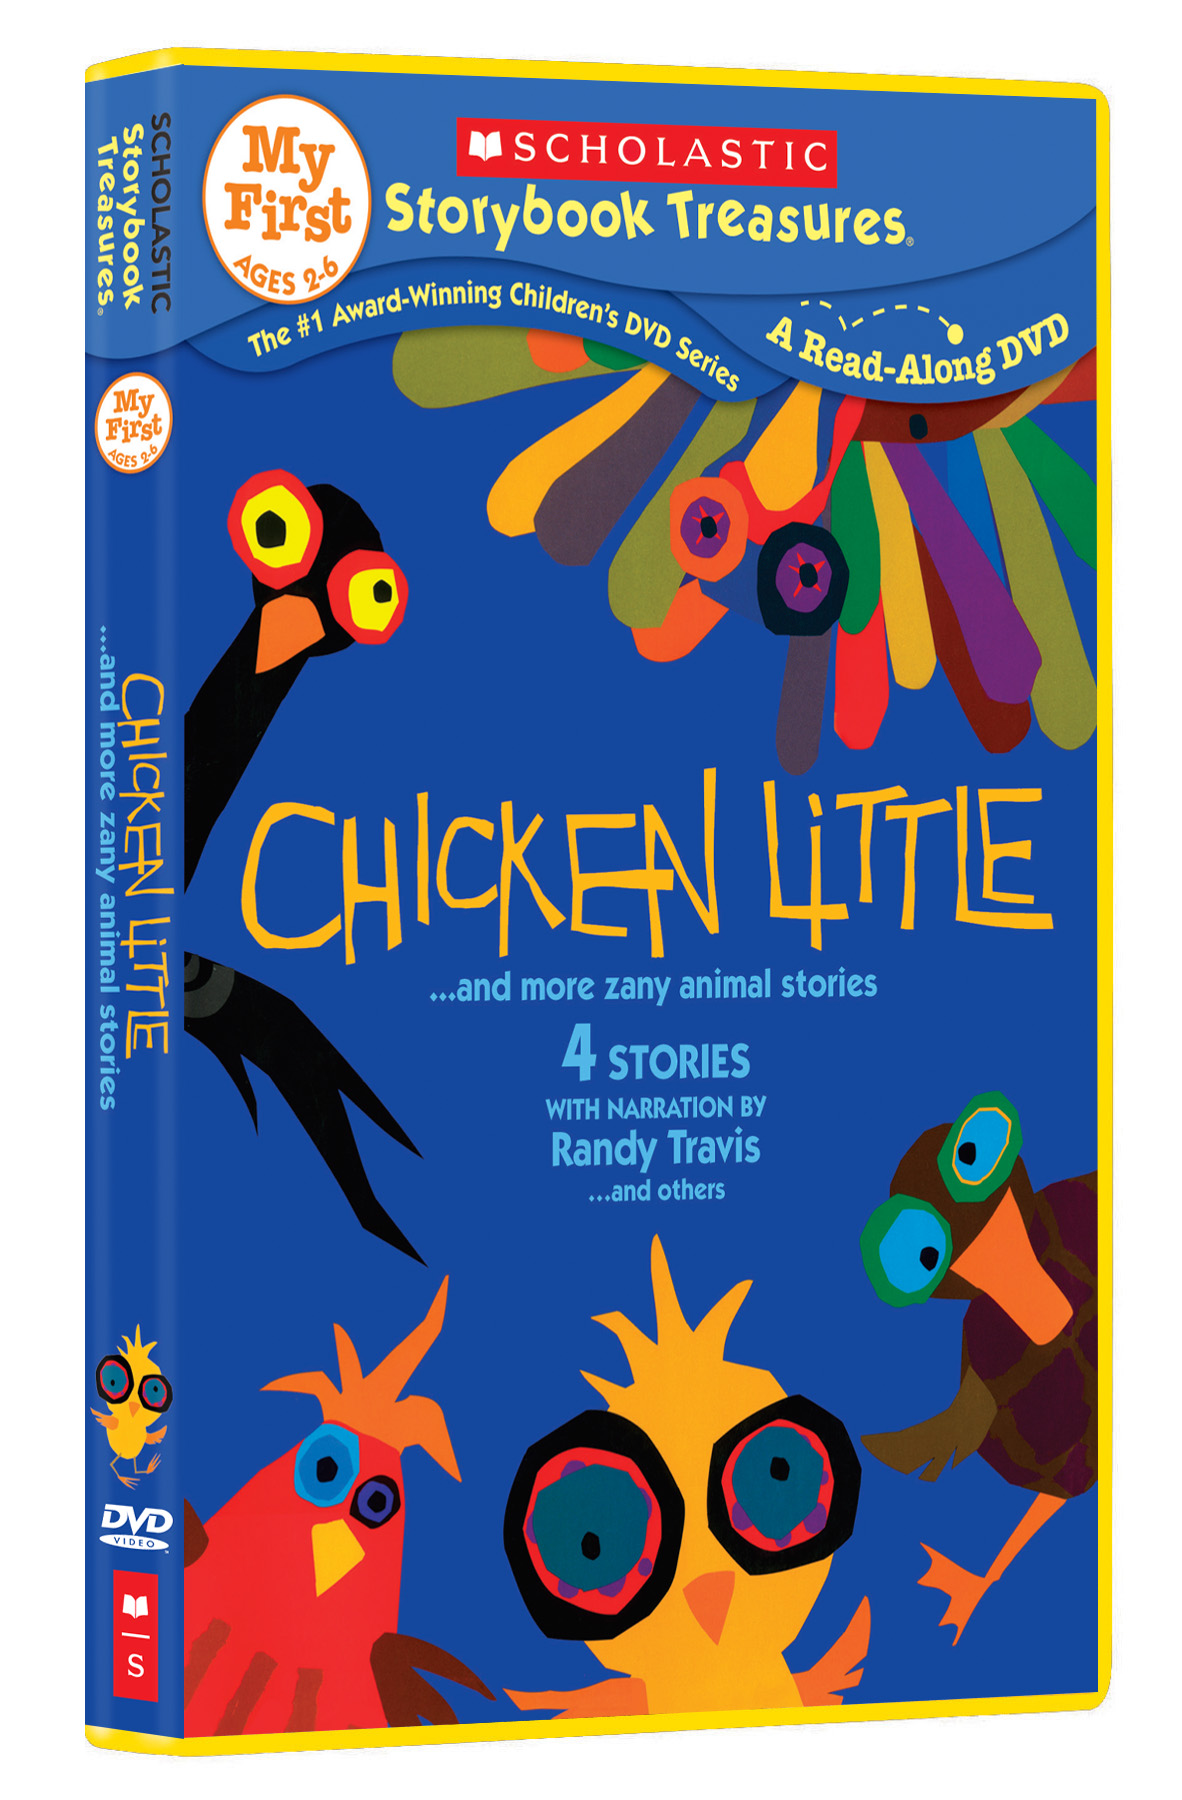 chicken little u2026and more zany animal stories